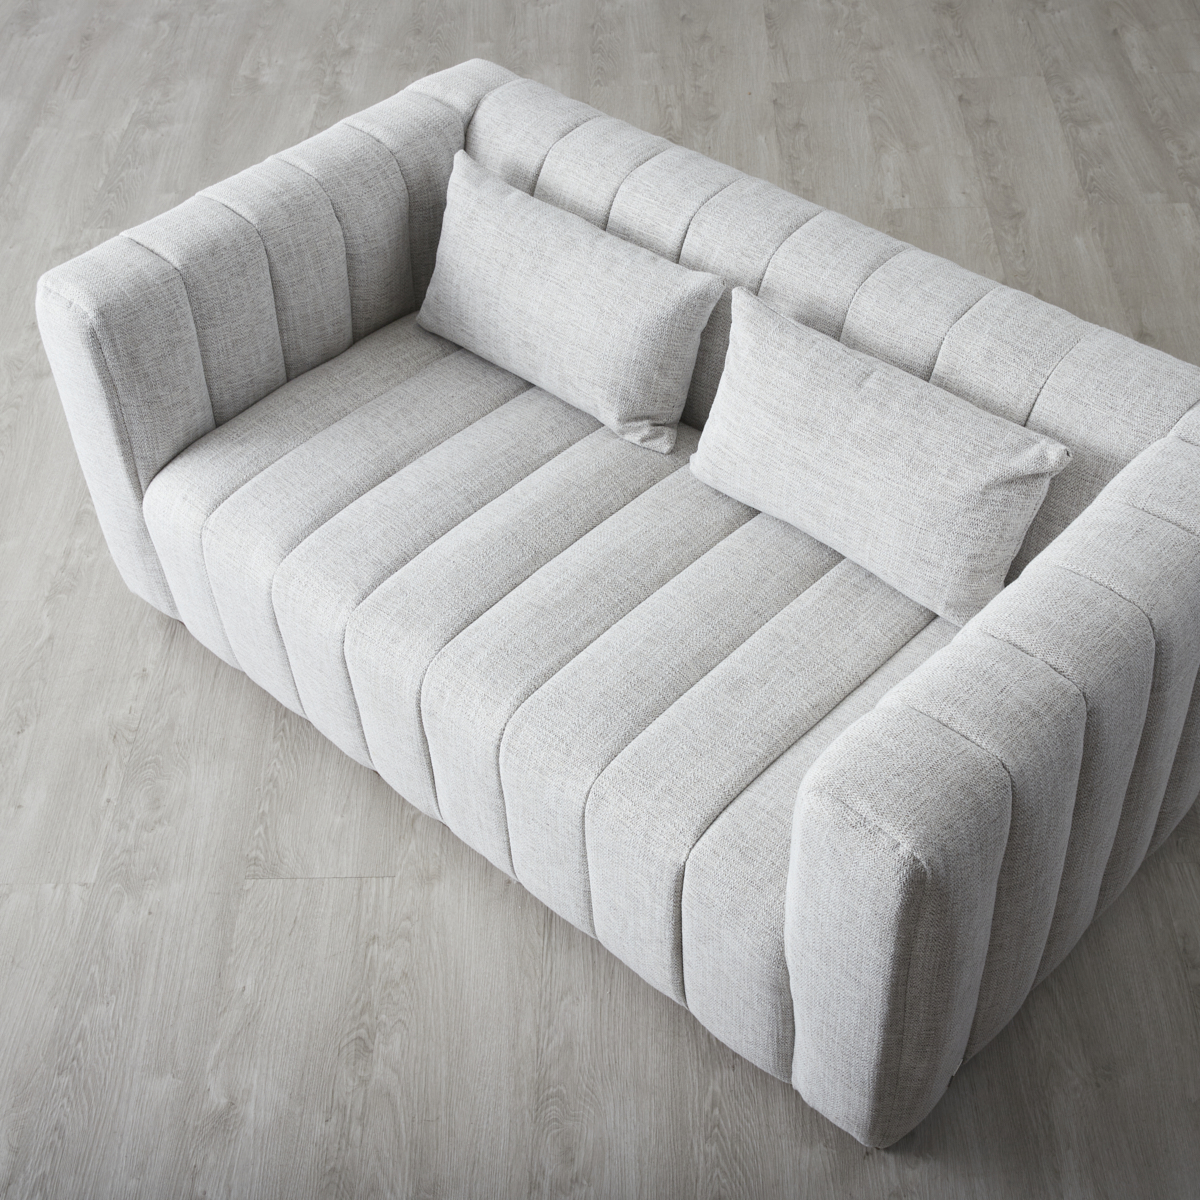 Storme 2 Seater Sofa